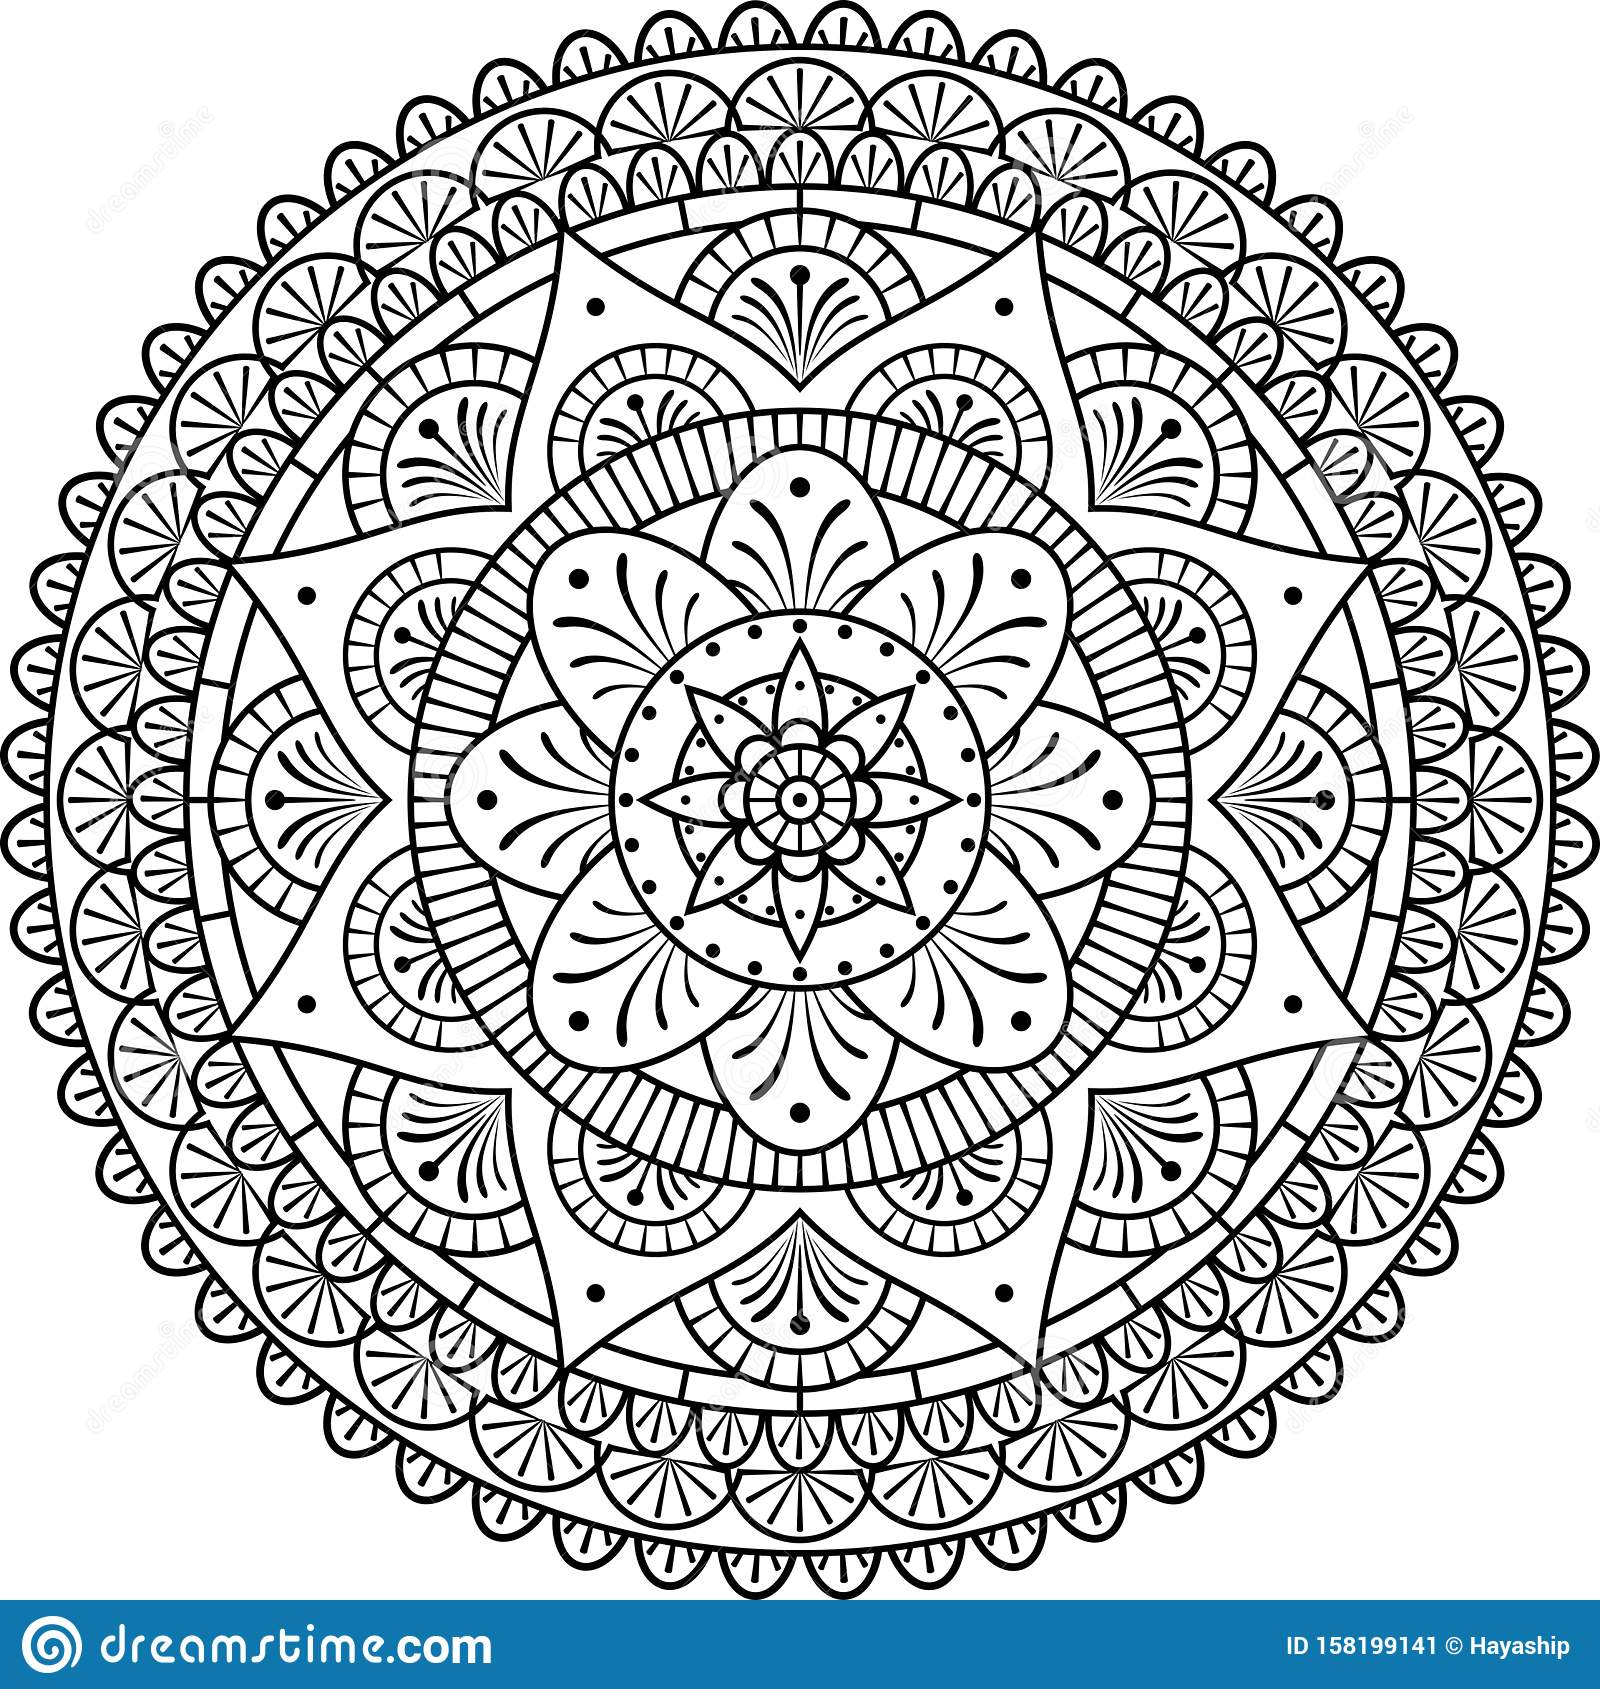 - Coloring Beauty Mandala Art Therapy Stock Vector - Illustration Of